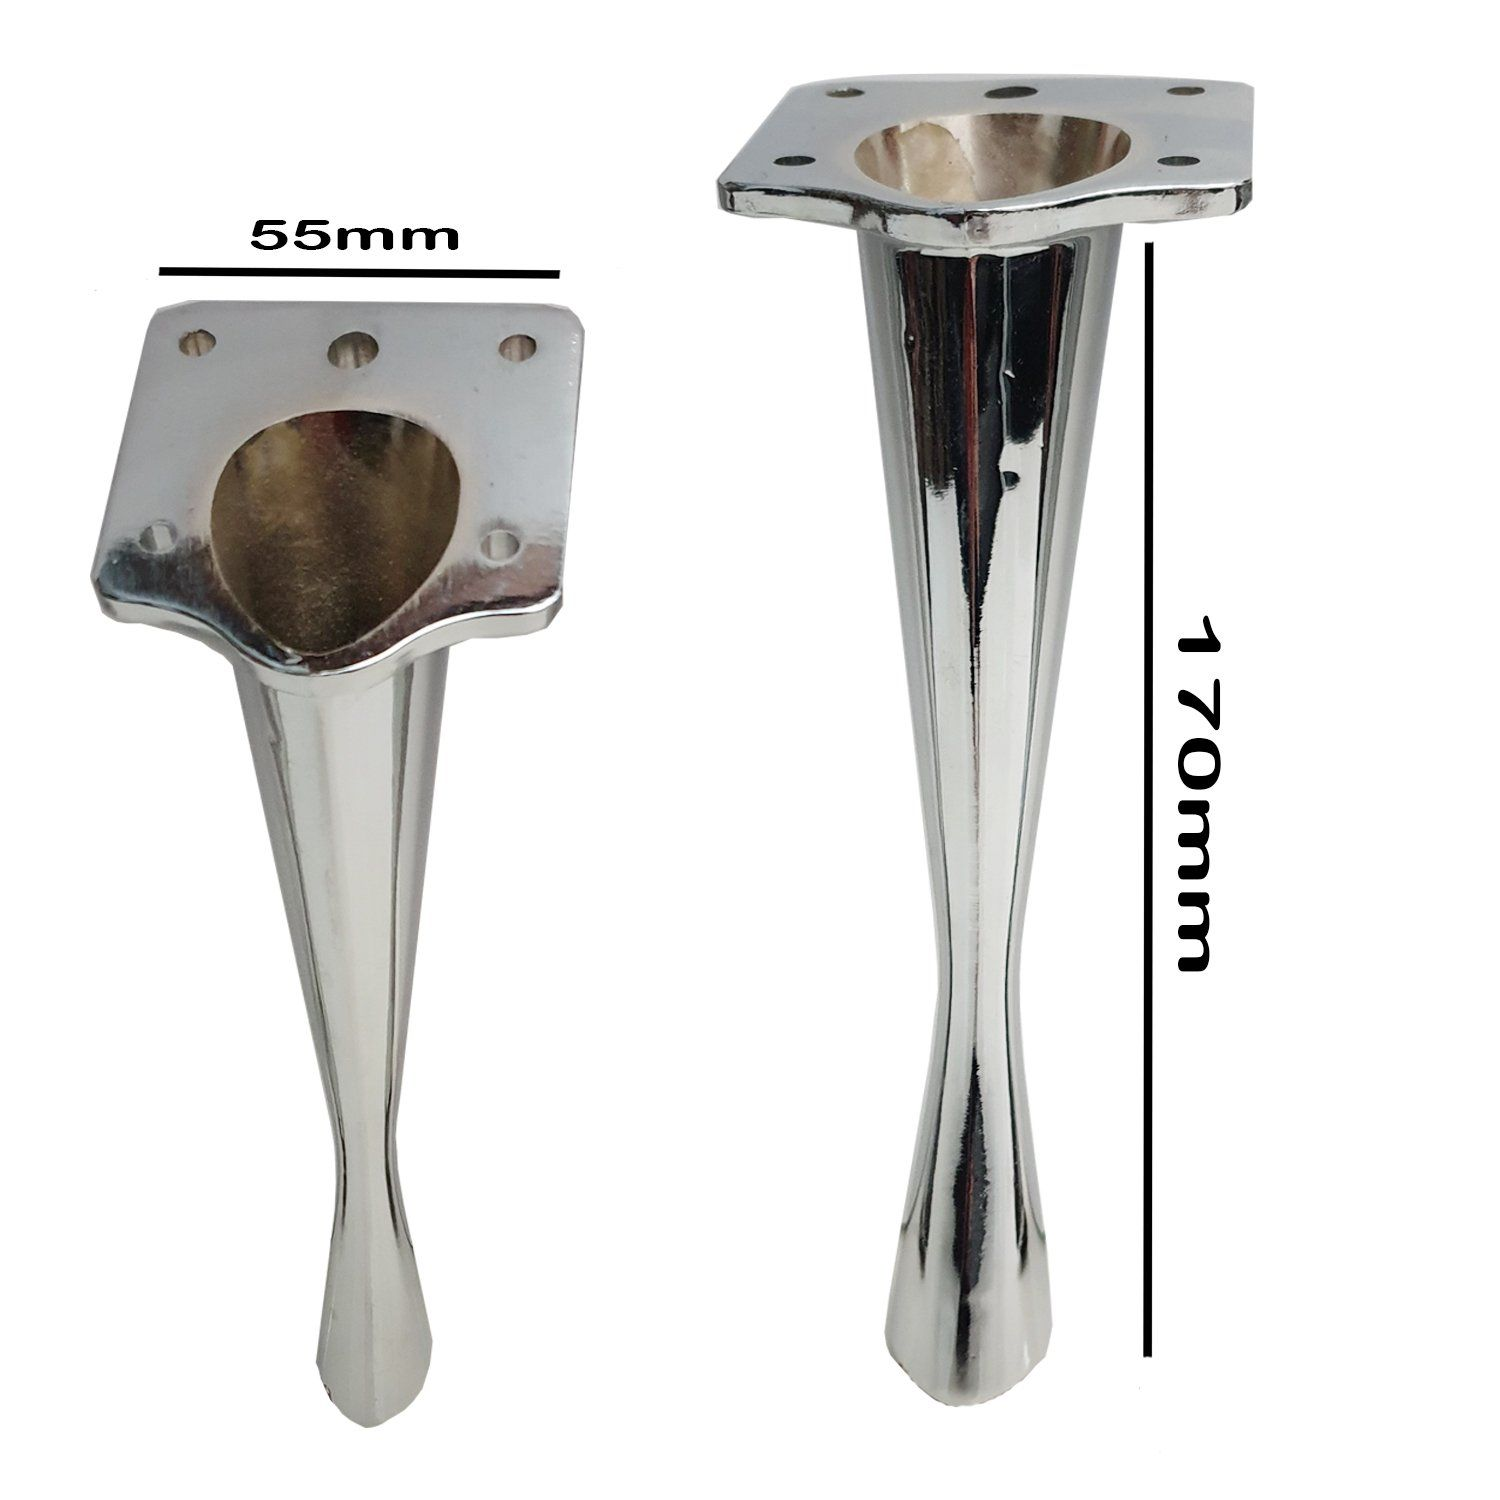 Photo of 4x METAL FURNITURE FEET/LEGS REPLACEMENT FOR SOFAS, FOOTSTOOLS